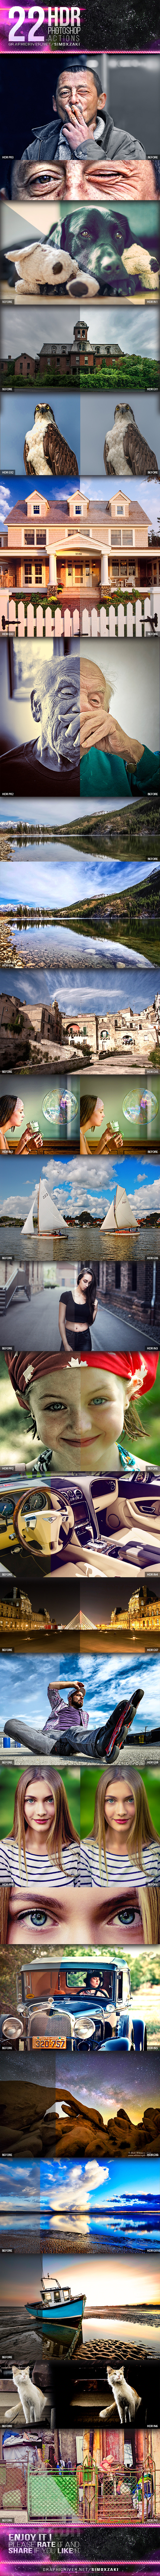 GraphicRiver 22 HDR Photoshop Actions V2 10940400